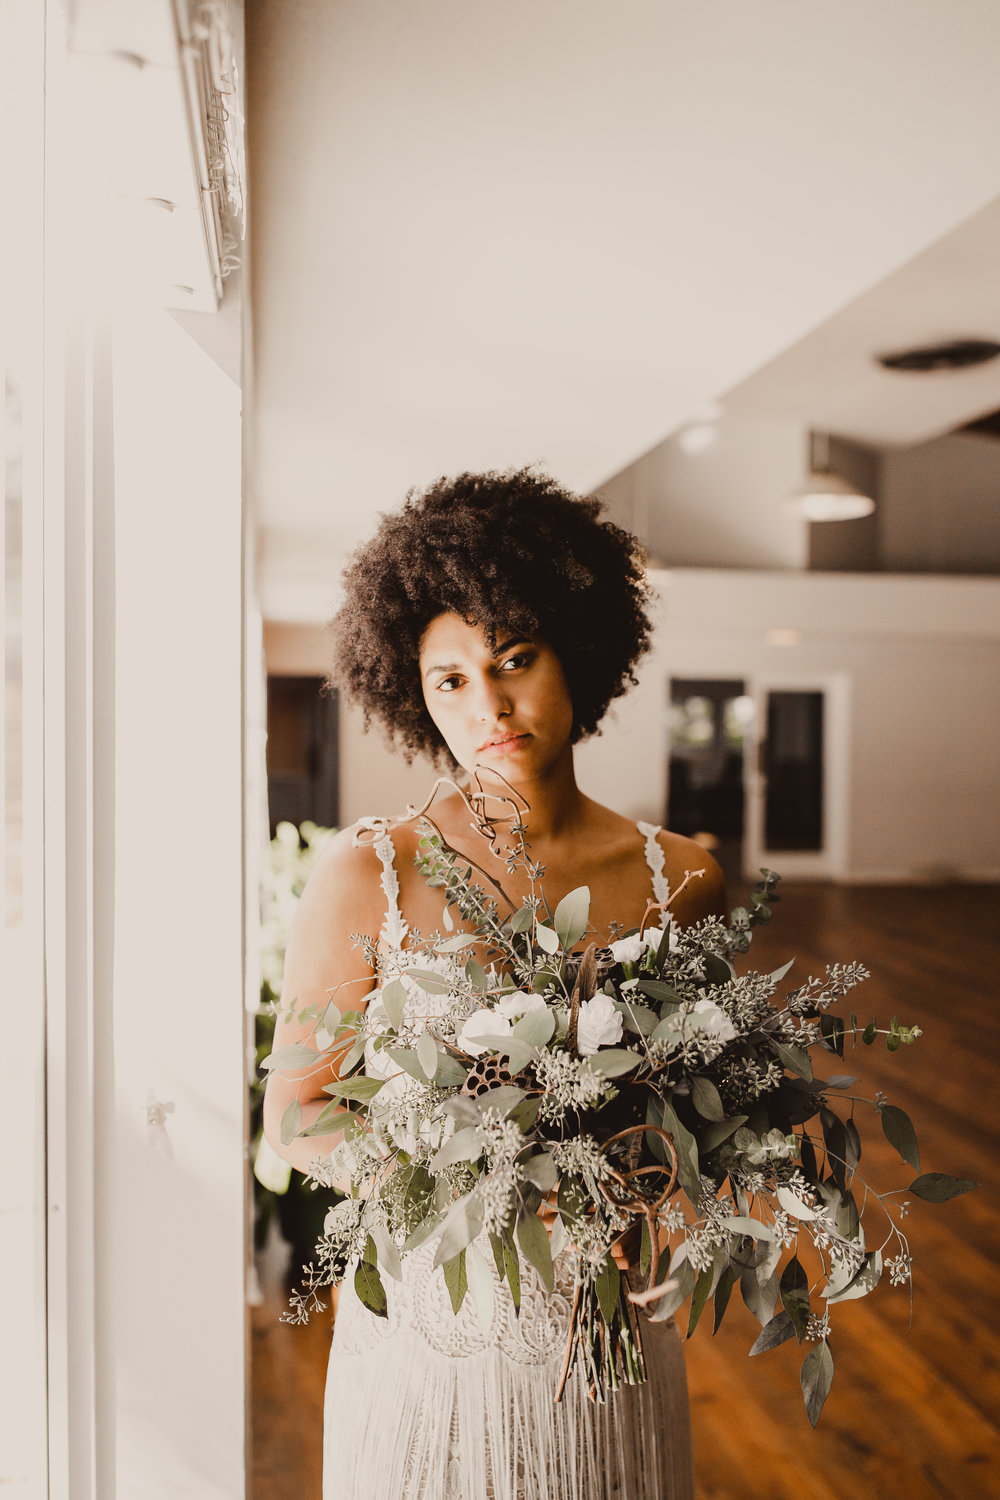 r+b Styled Shoot - GARDEN VILLA, WINTER PARK